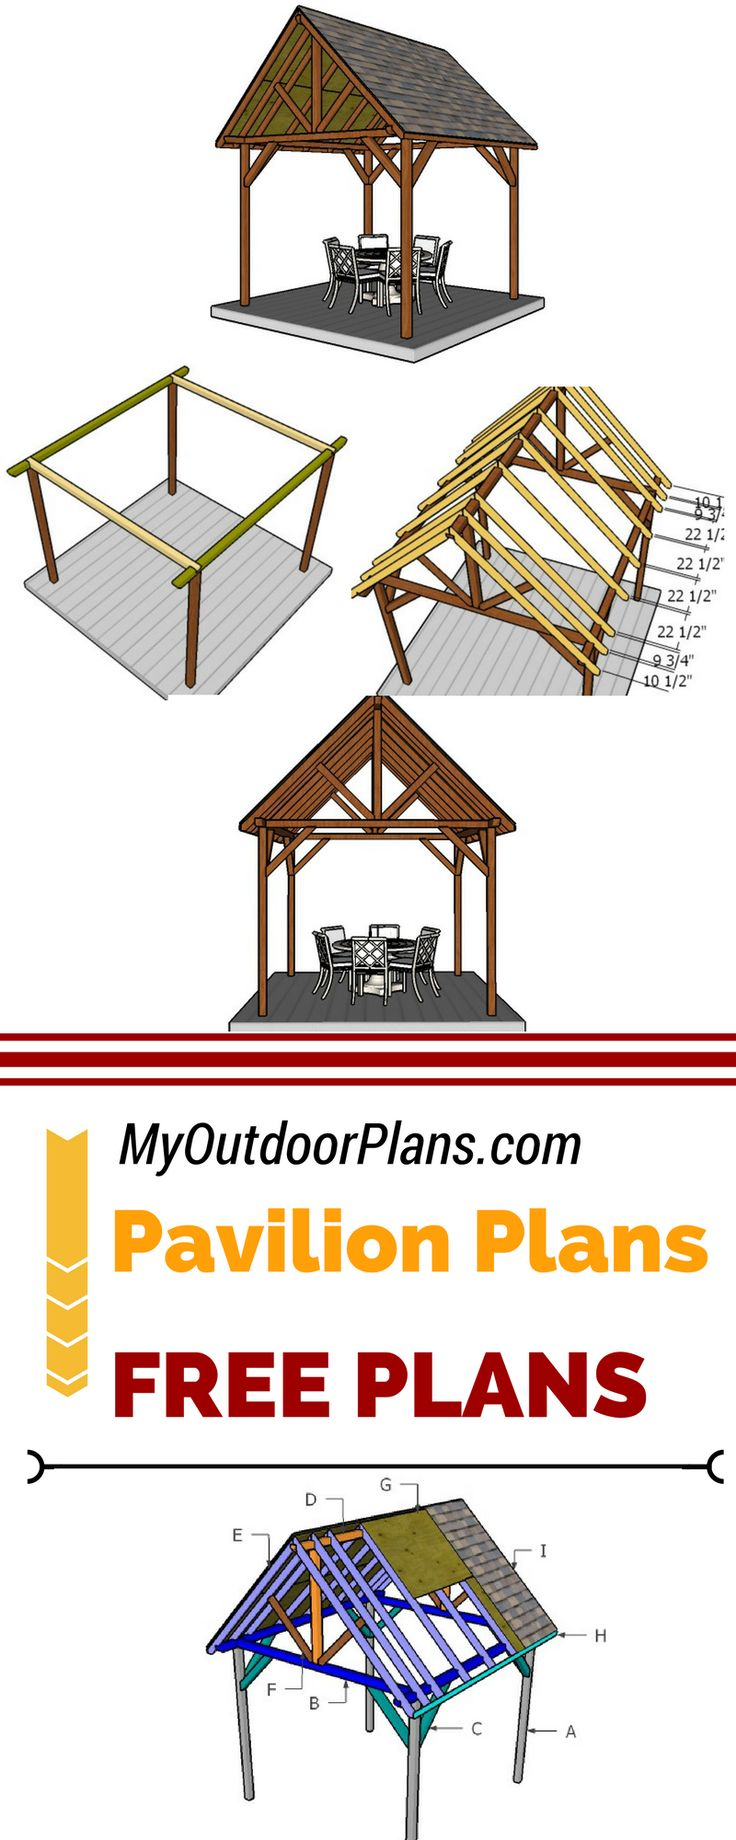 learn how to build an outdoor pavilion with my easy to follow